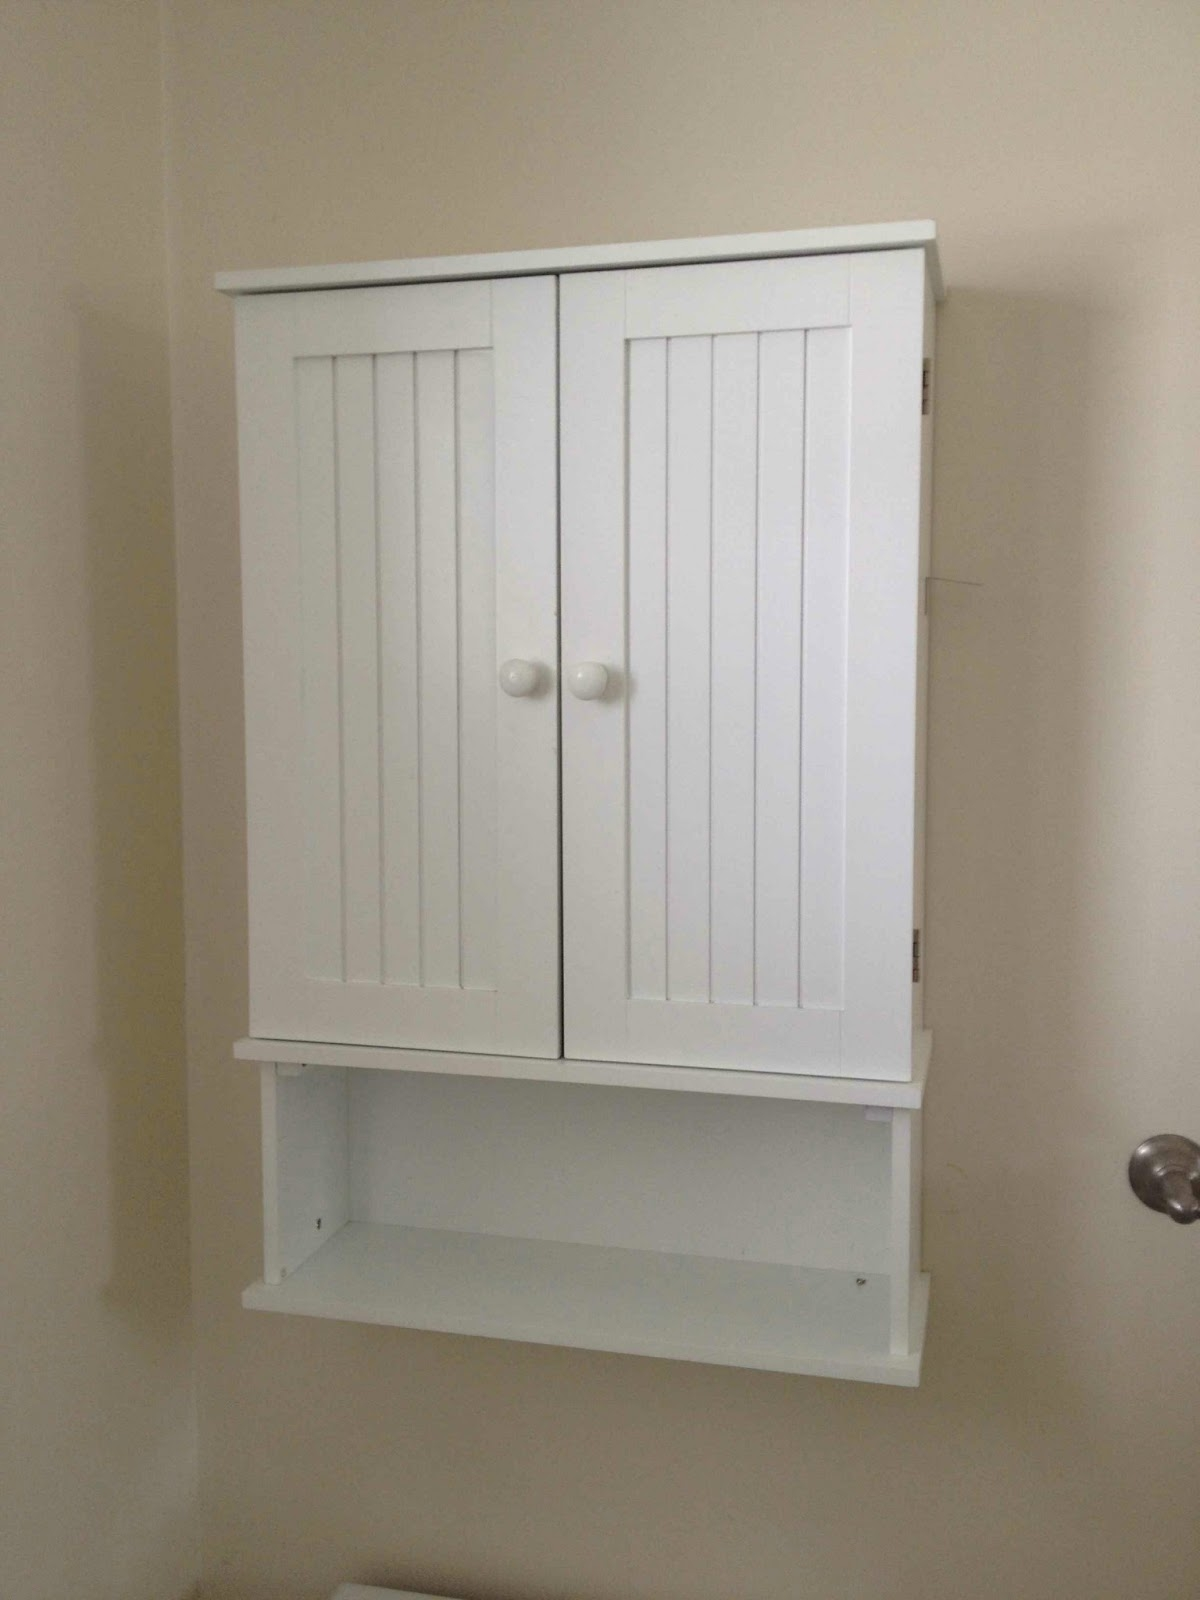 Permalink to Wooden Bathroom Wall Mounted Cabinets